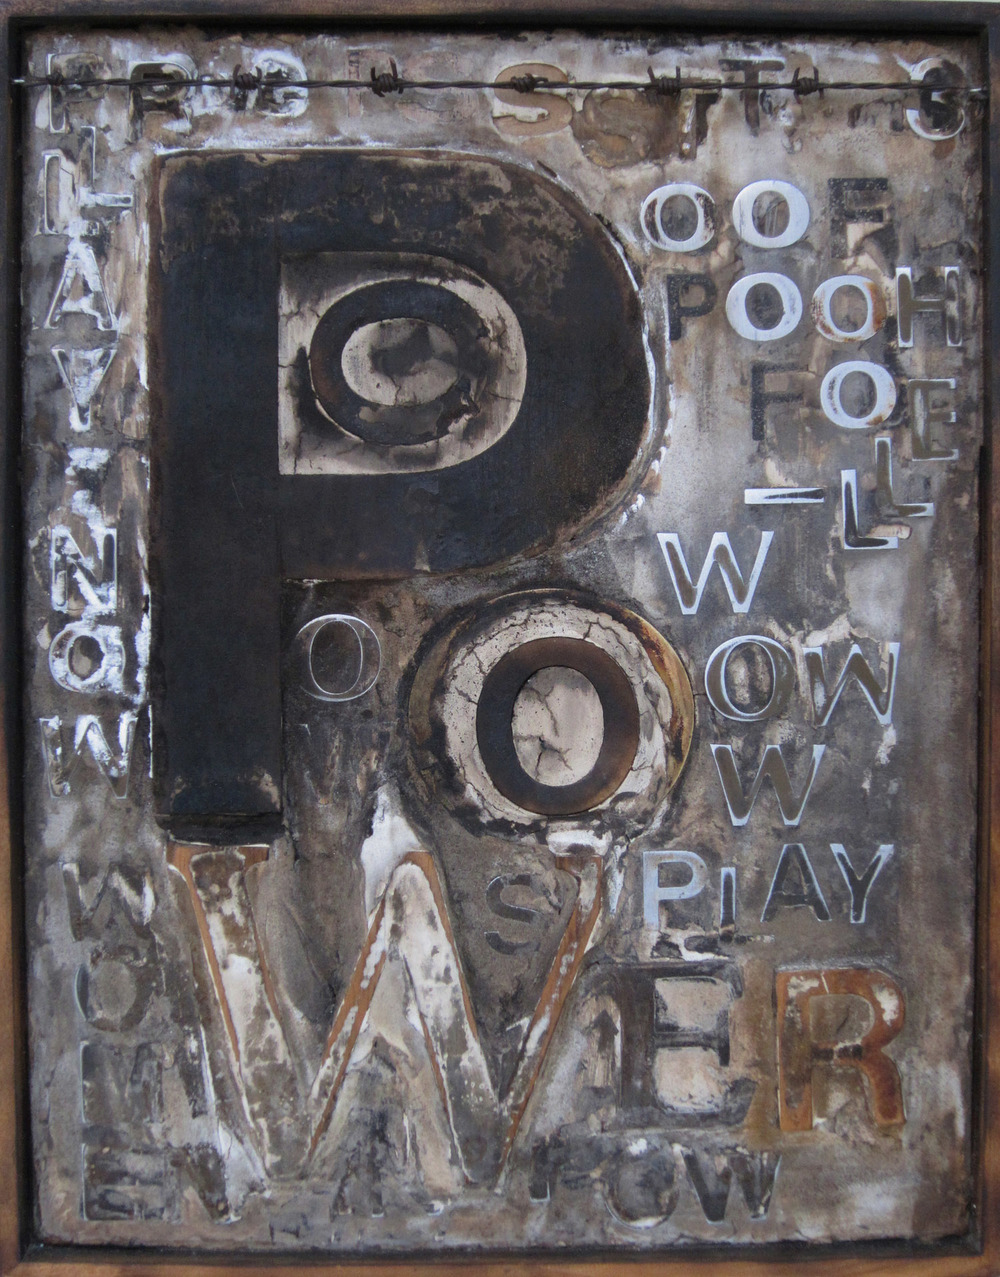 2bl(0) - POWer-limestone polymer, resins, torched wood, 23x18 in. 2006.jpg